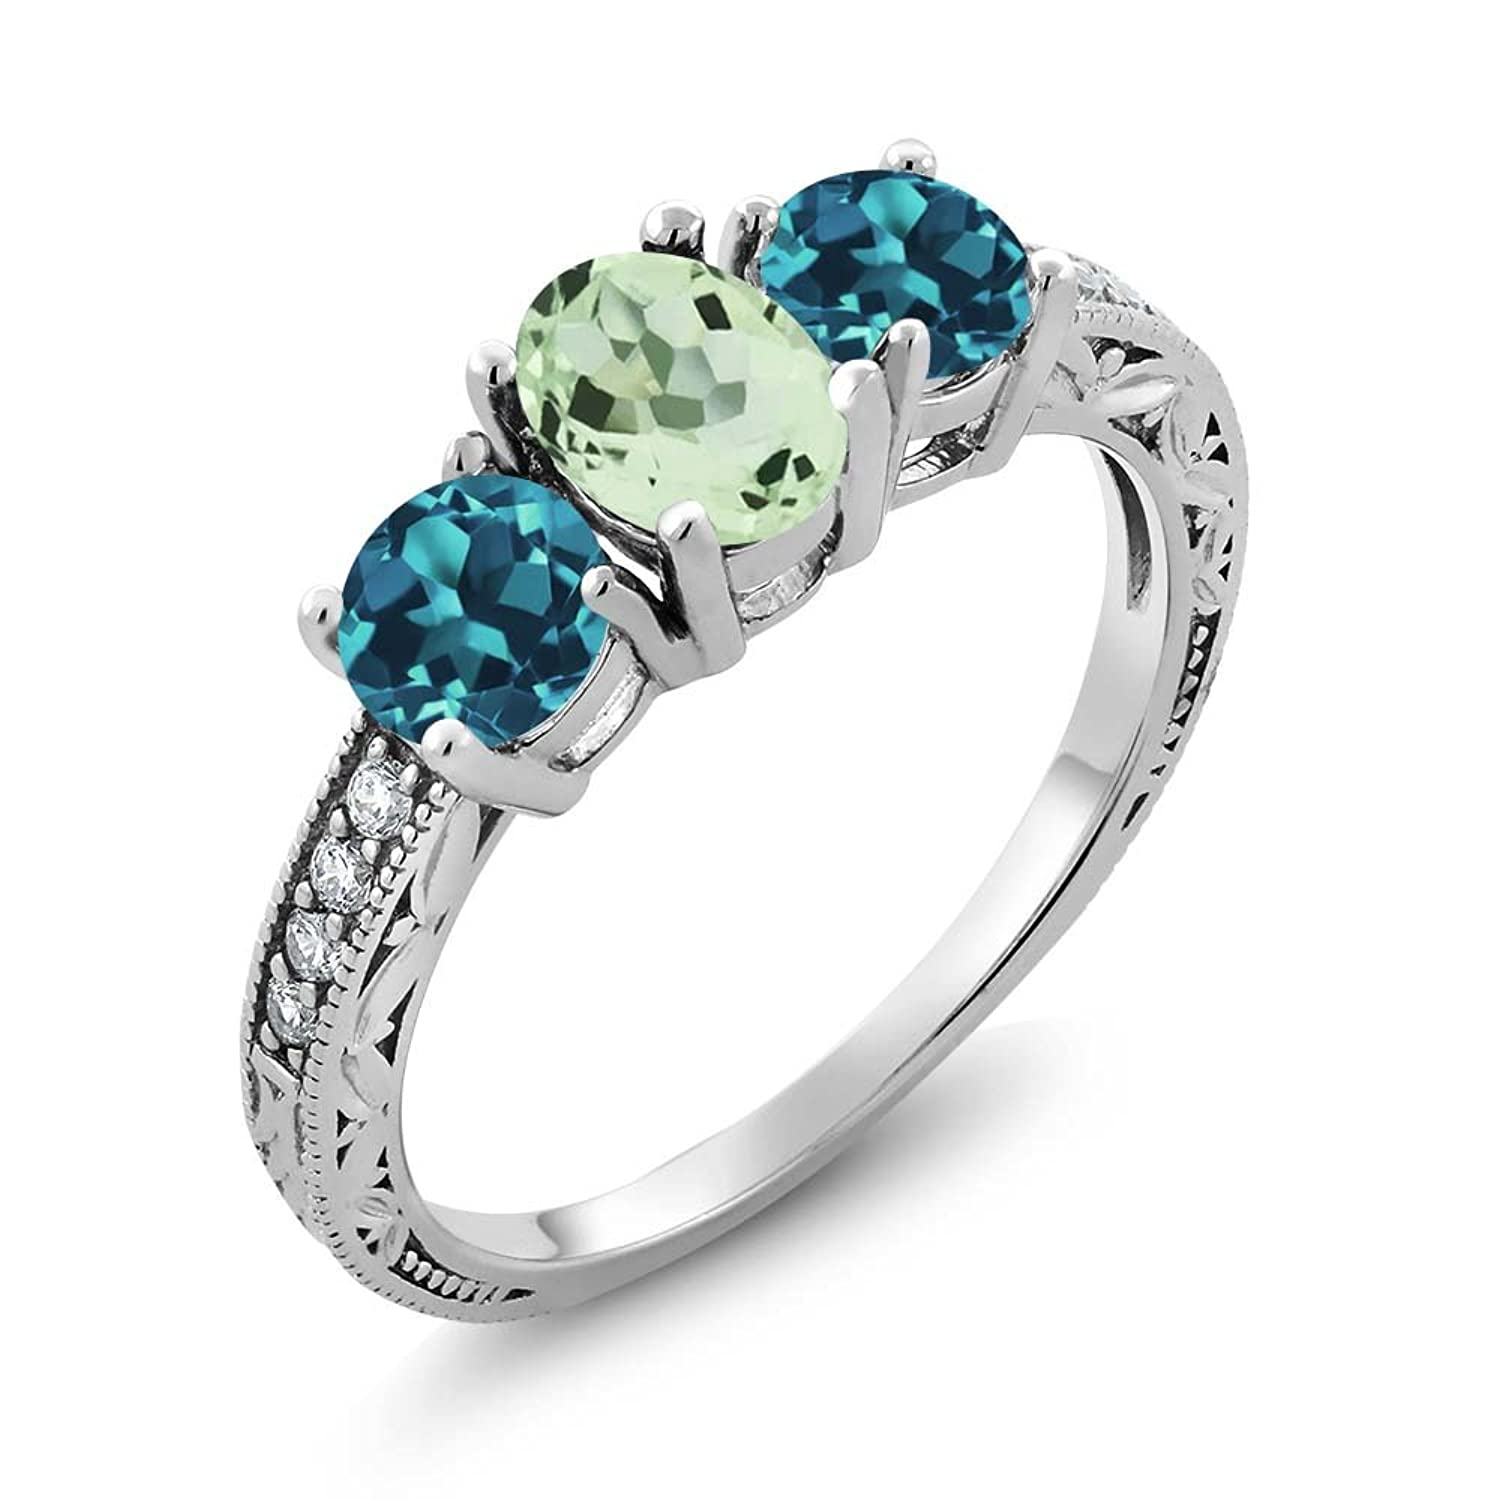 1.87 Ct Oval Green Amethyst and London Blue Topaz 925 Sterling Silver Ladies 3-Stone Ring (Available in size 5, 6, 7, 8, 9)